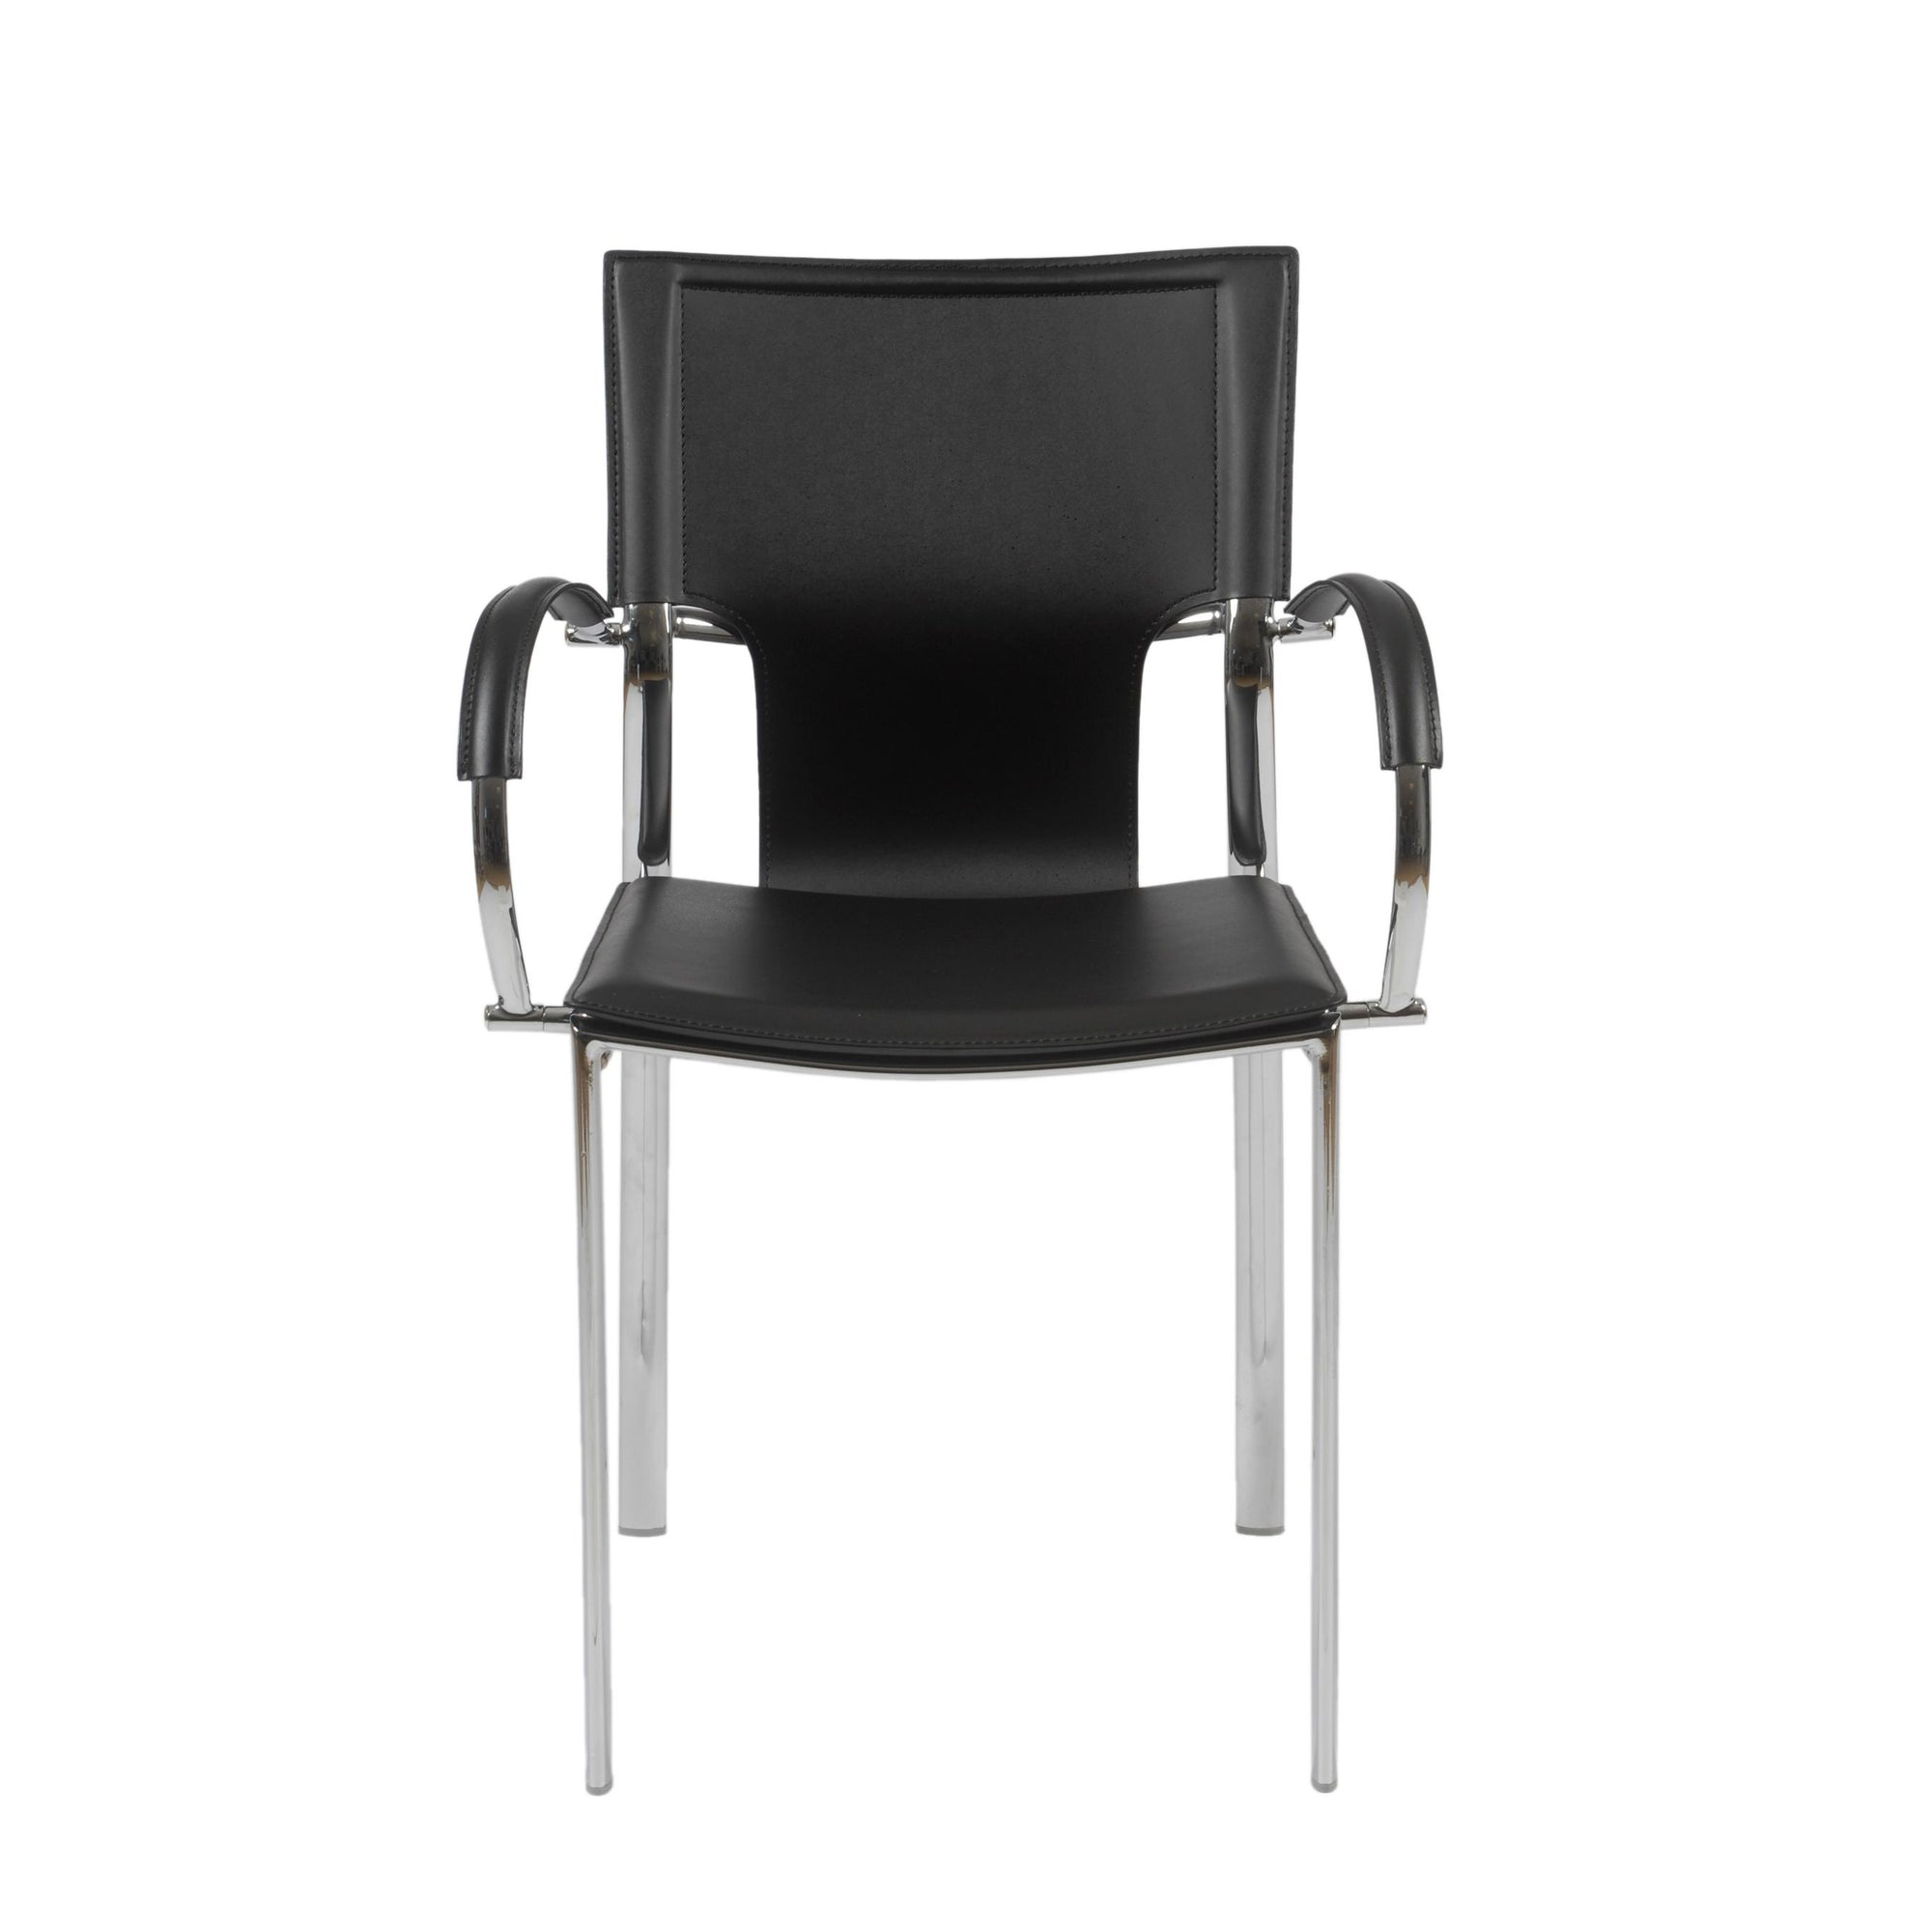 Black Leather Conference Or Guest Chairs With Arms (Set Of 2)